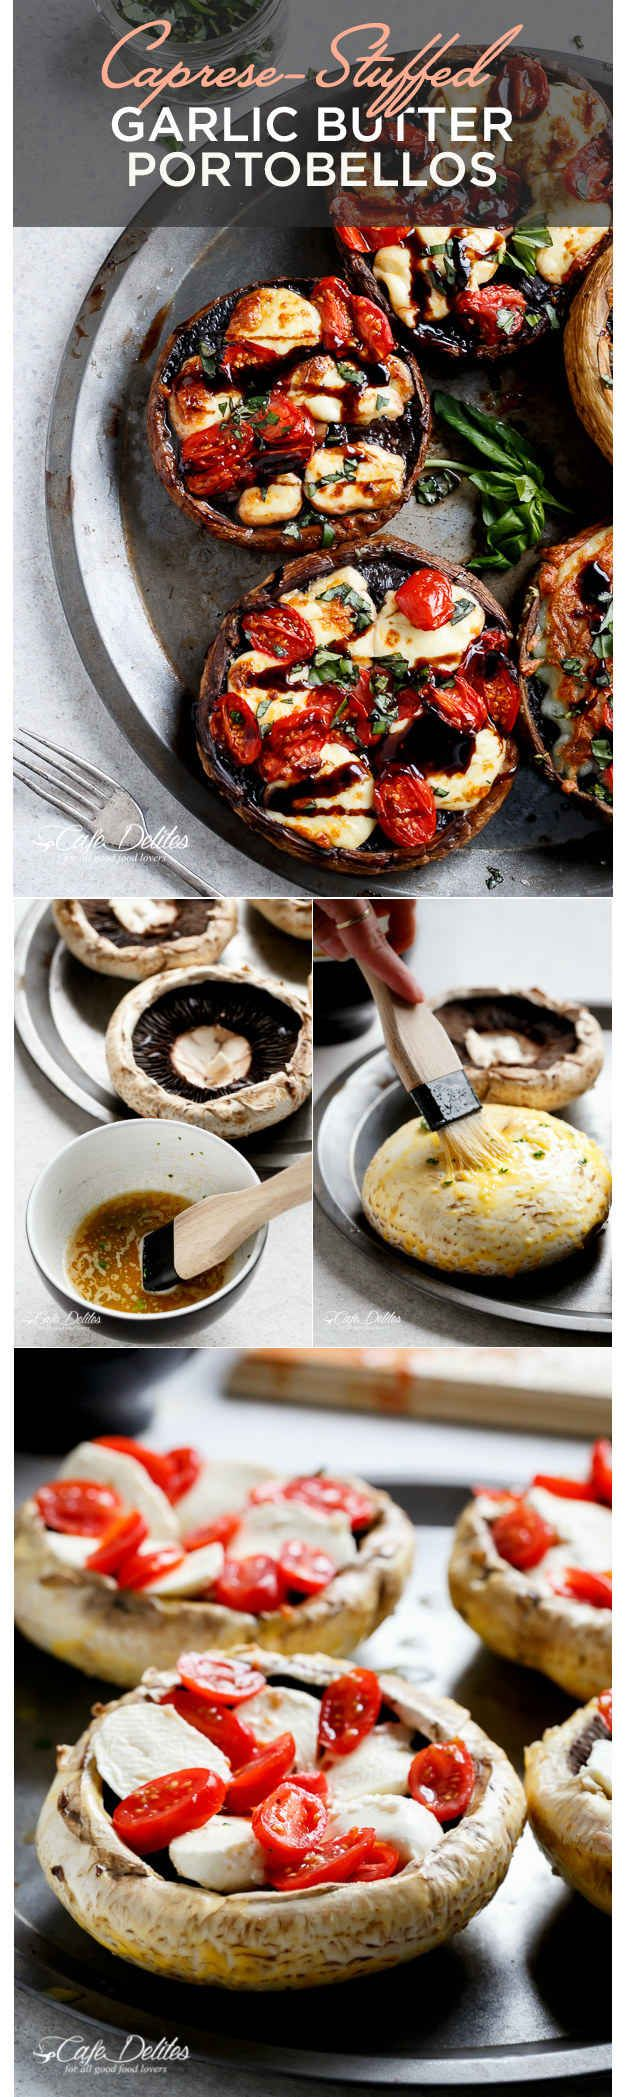 Caprese-Stuffed Garlic Butter Portobellos